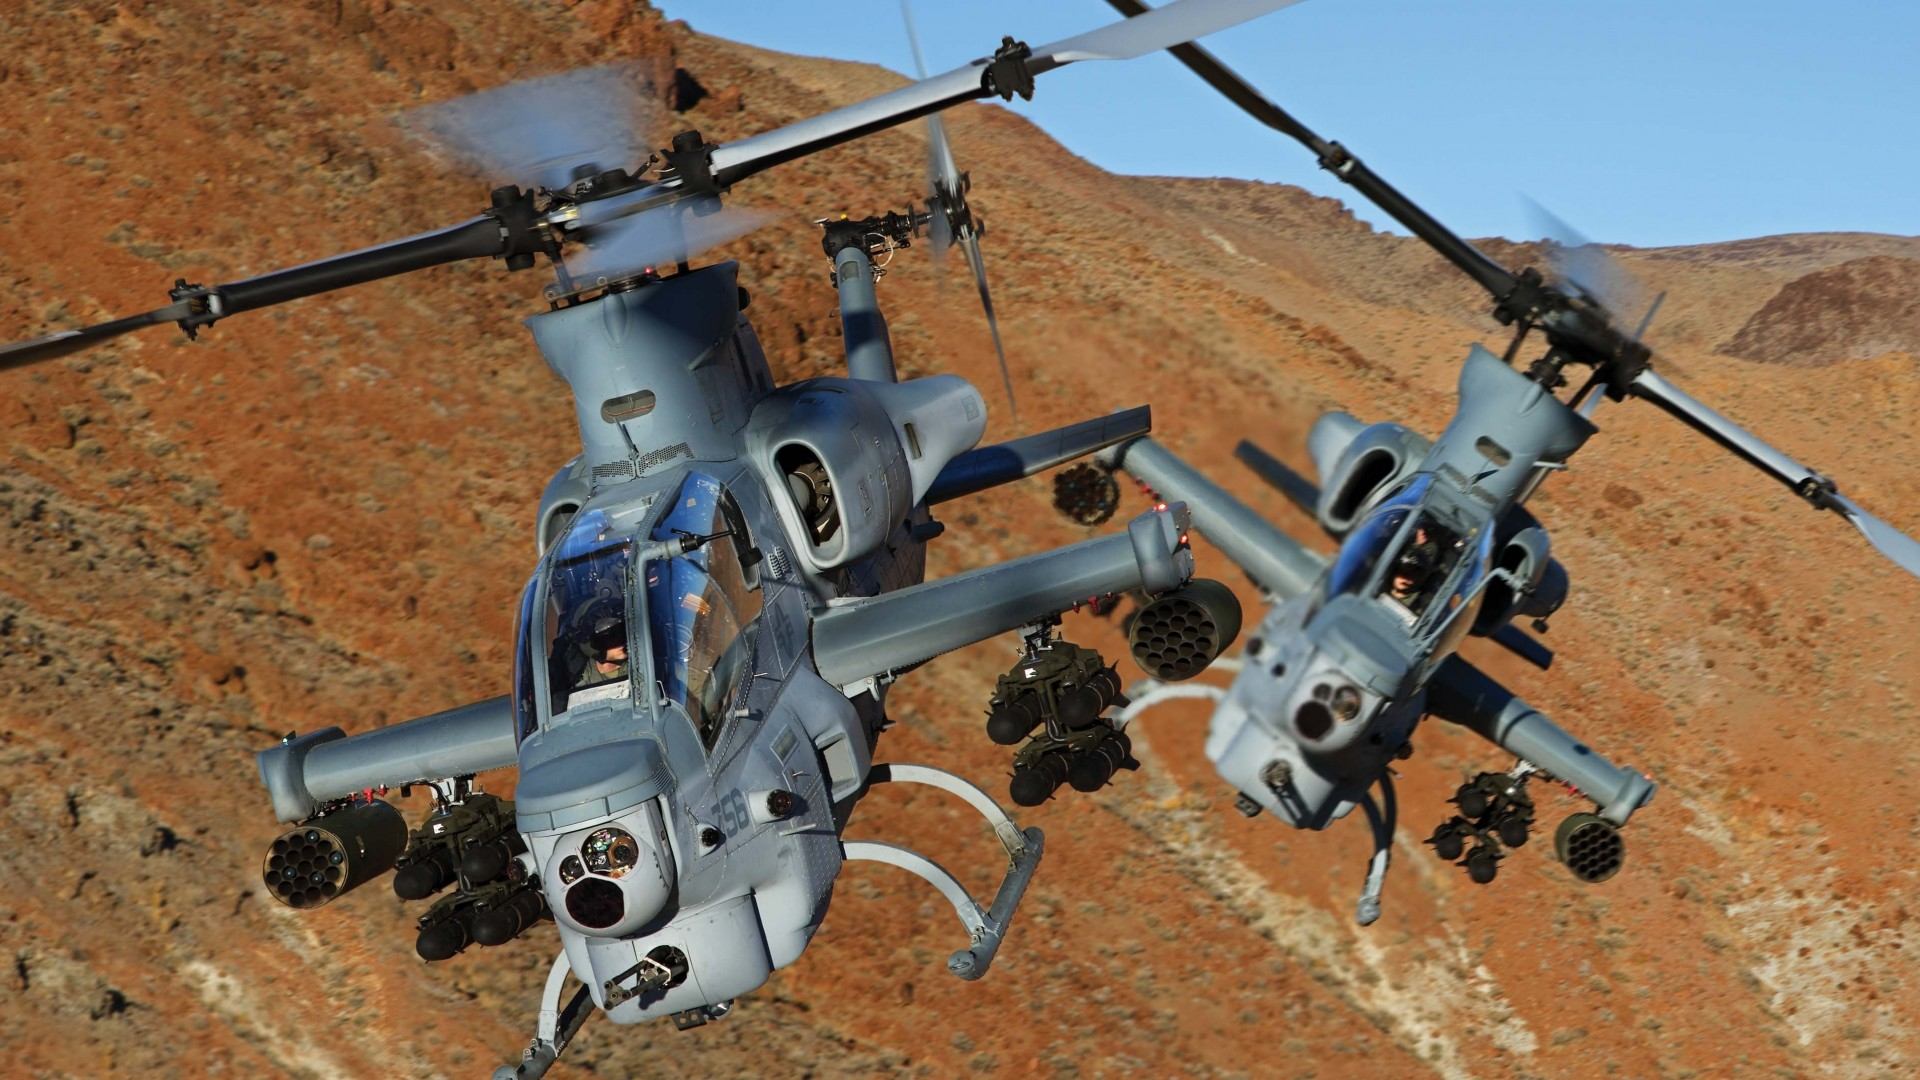 Viper, AH-1Z, Bell, attack helicopter, U. S. Marine, Zulu Cobra, flight, mountain (horizontal)